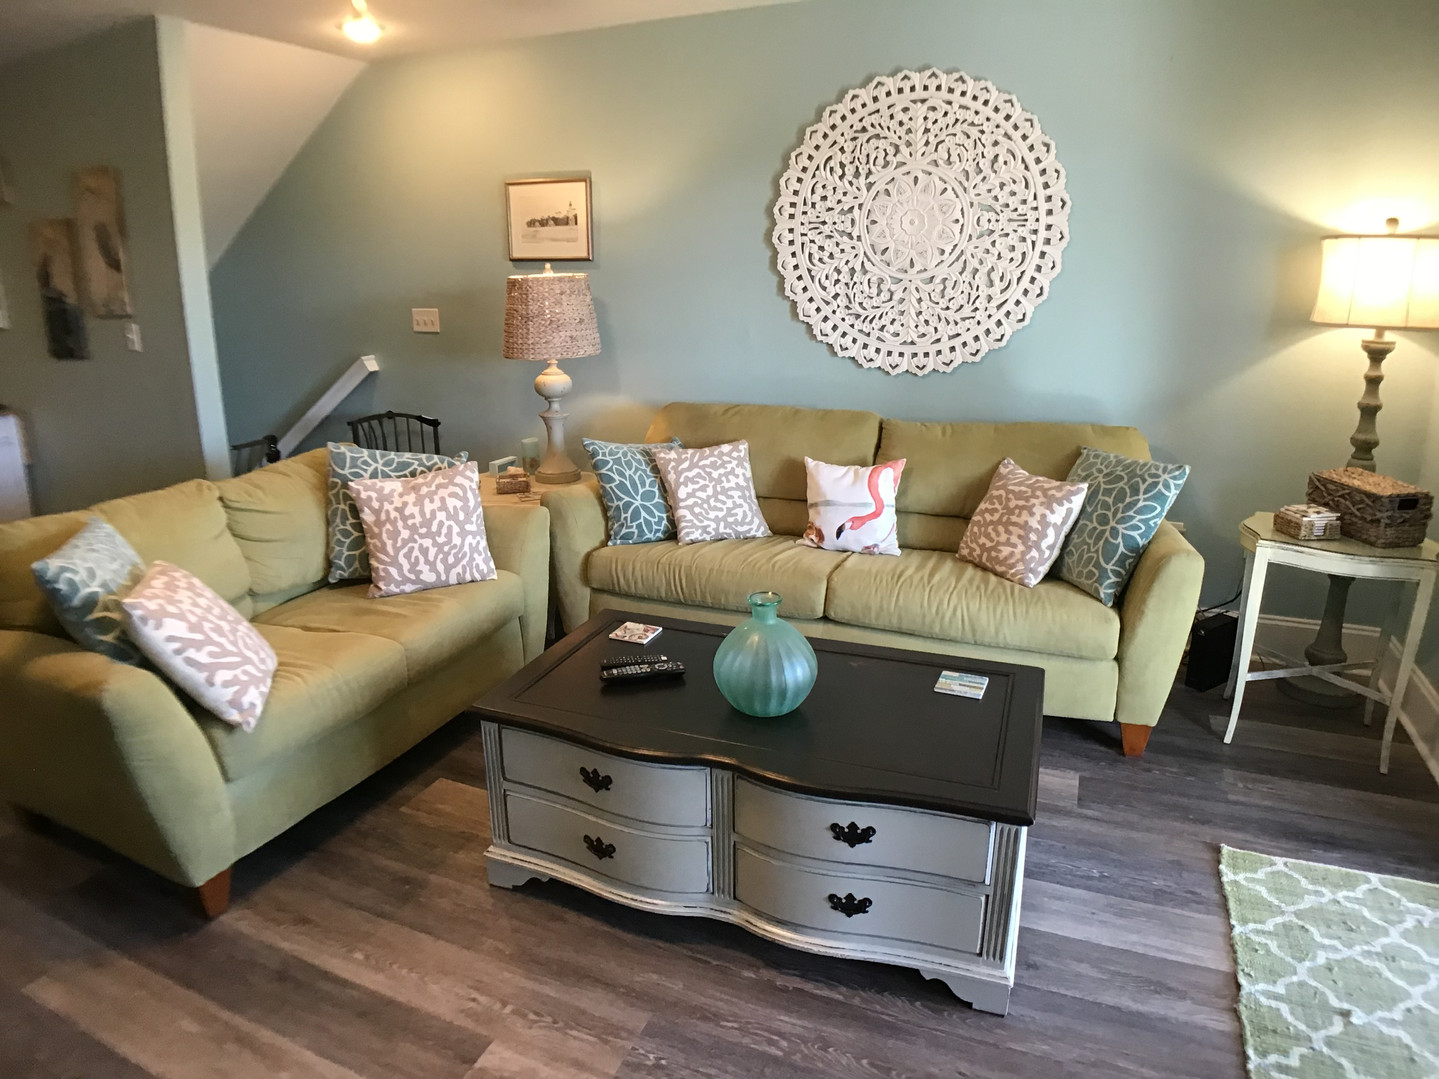 Seating area of family room